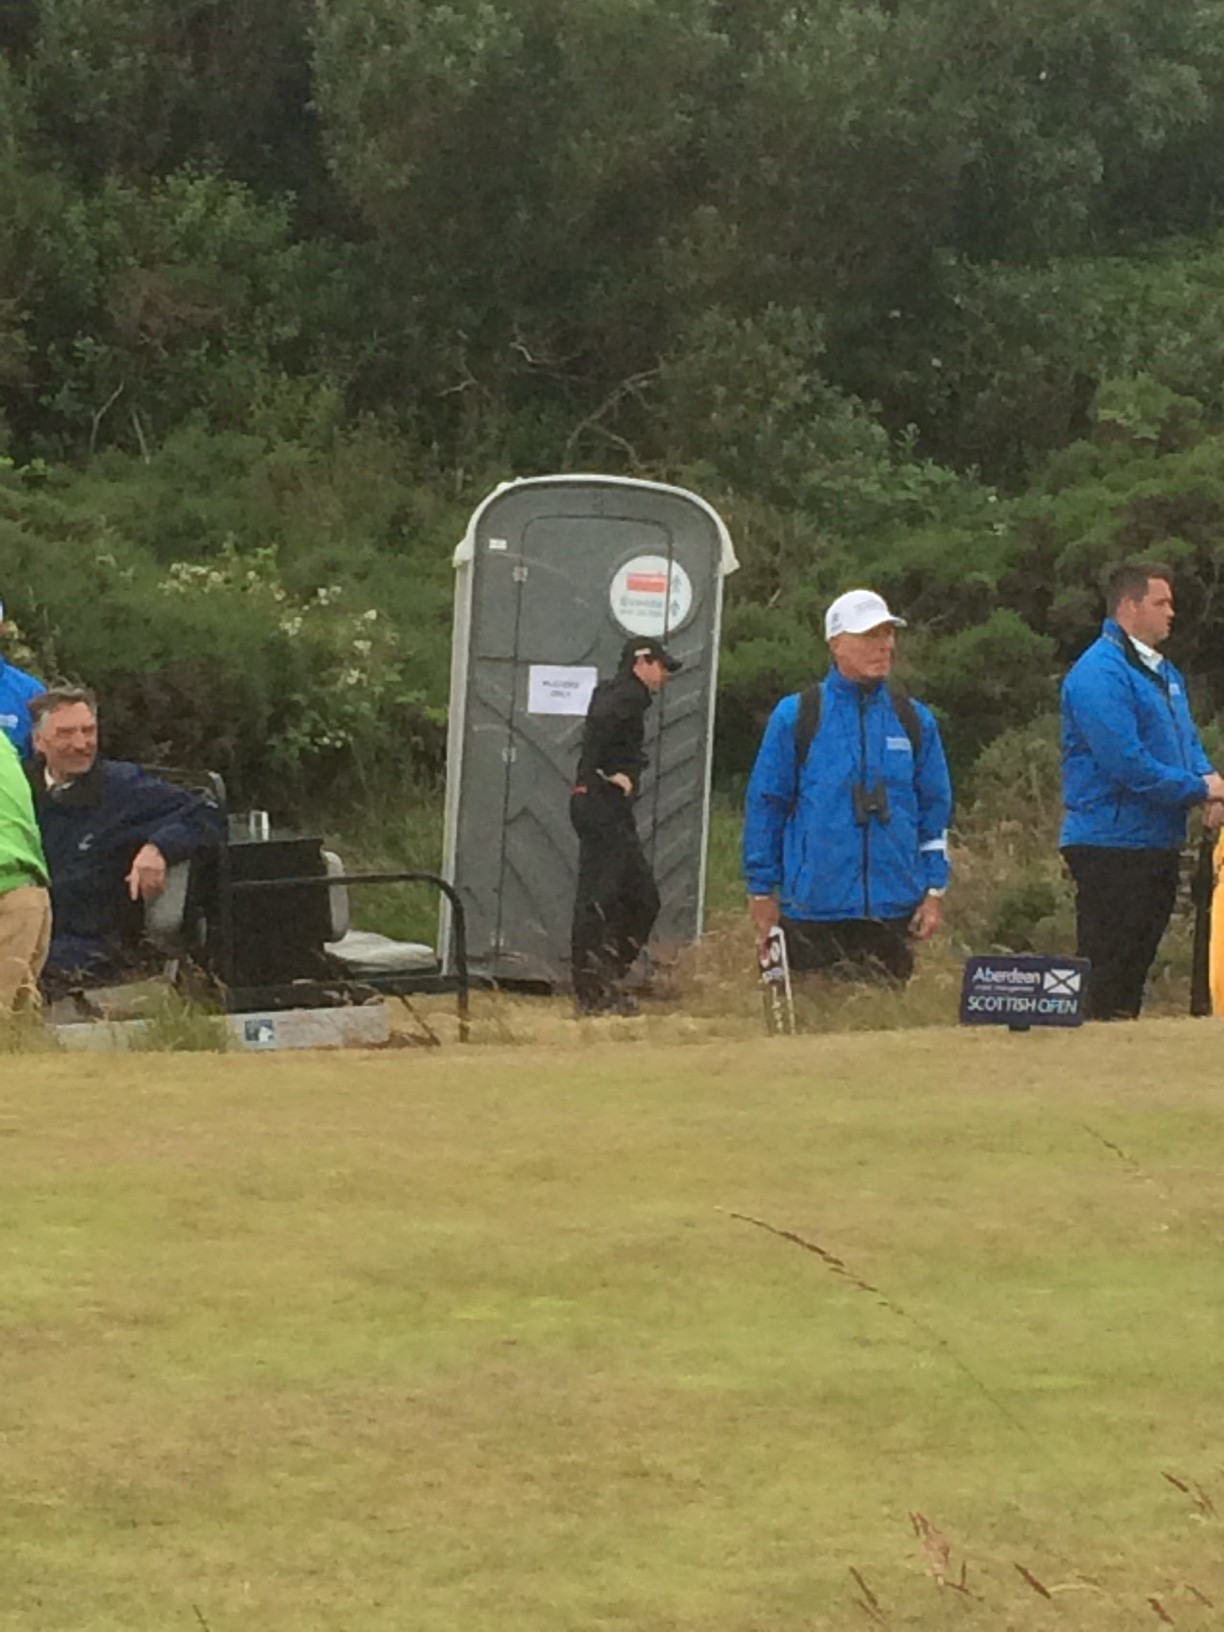 Rory McIlroy locks his playing partner in a portable toilet